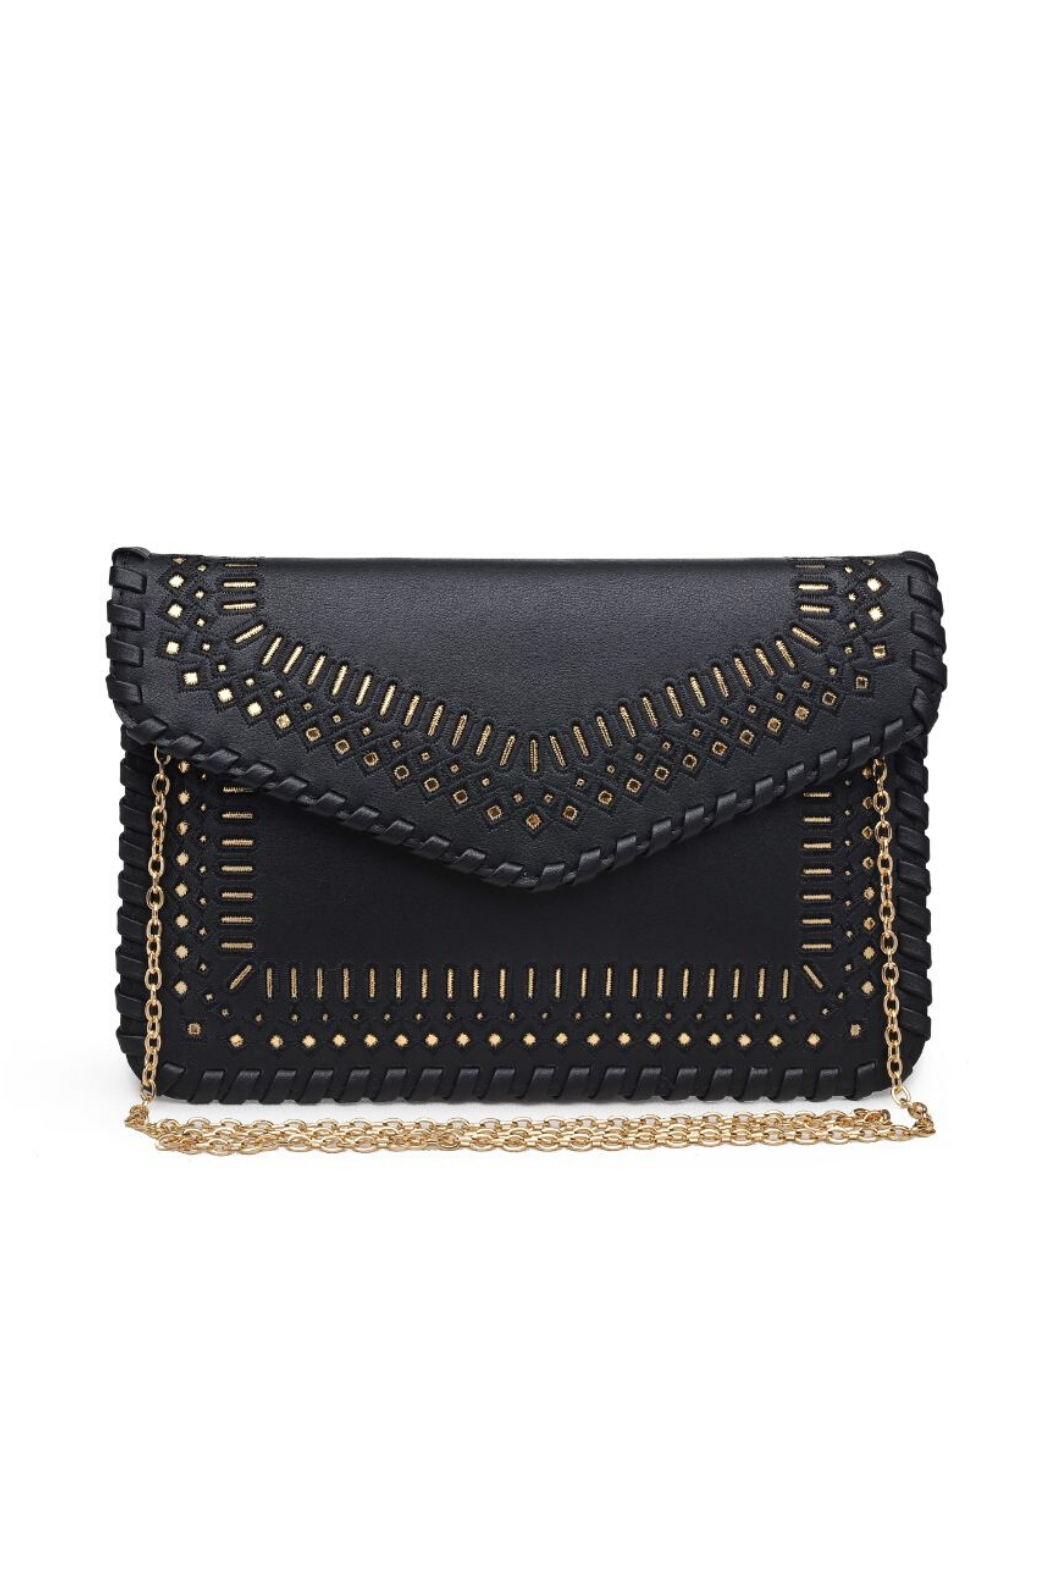 Urban Expressions Spencer Vegan Leather Clutch - Main Image